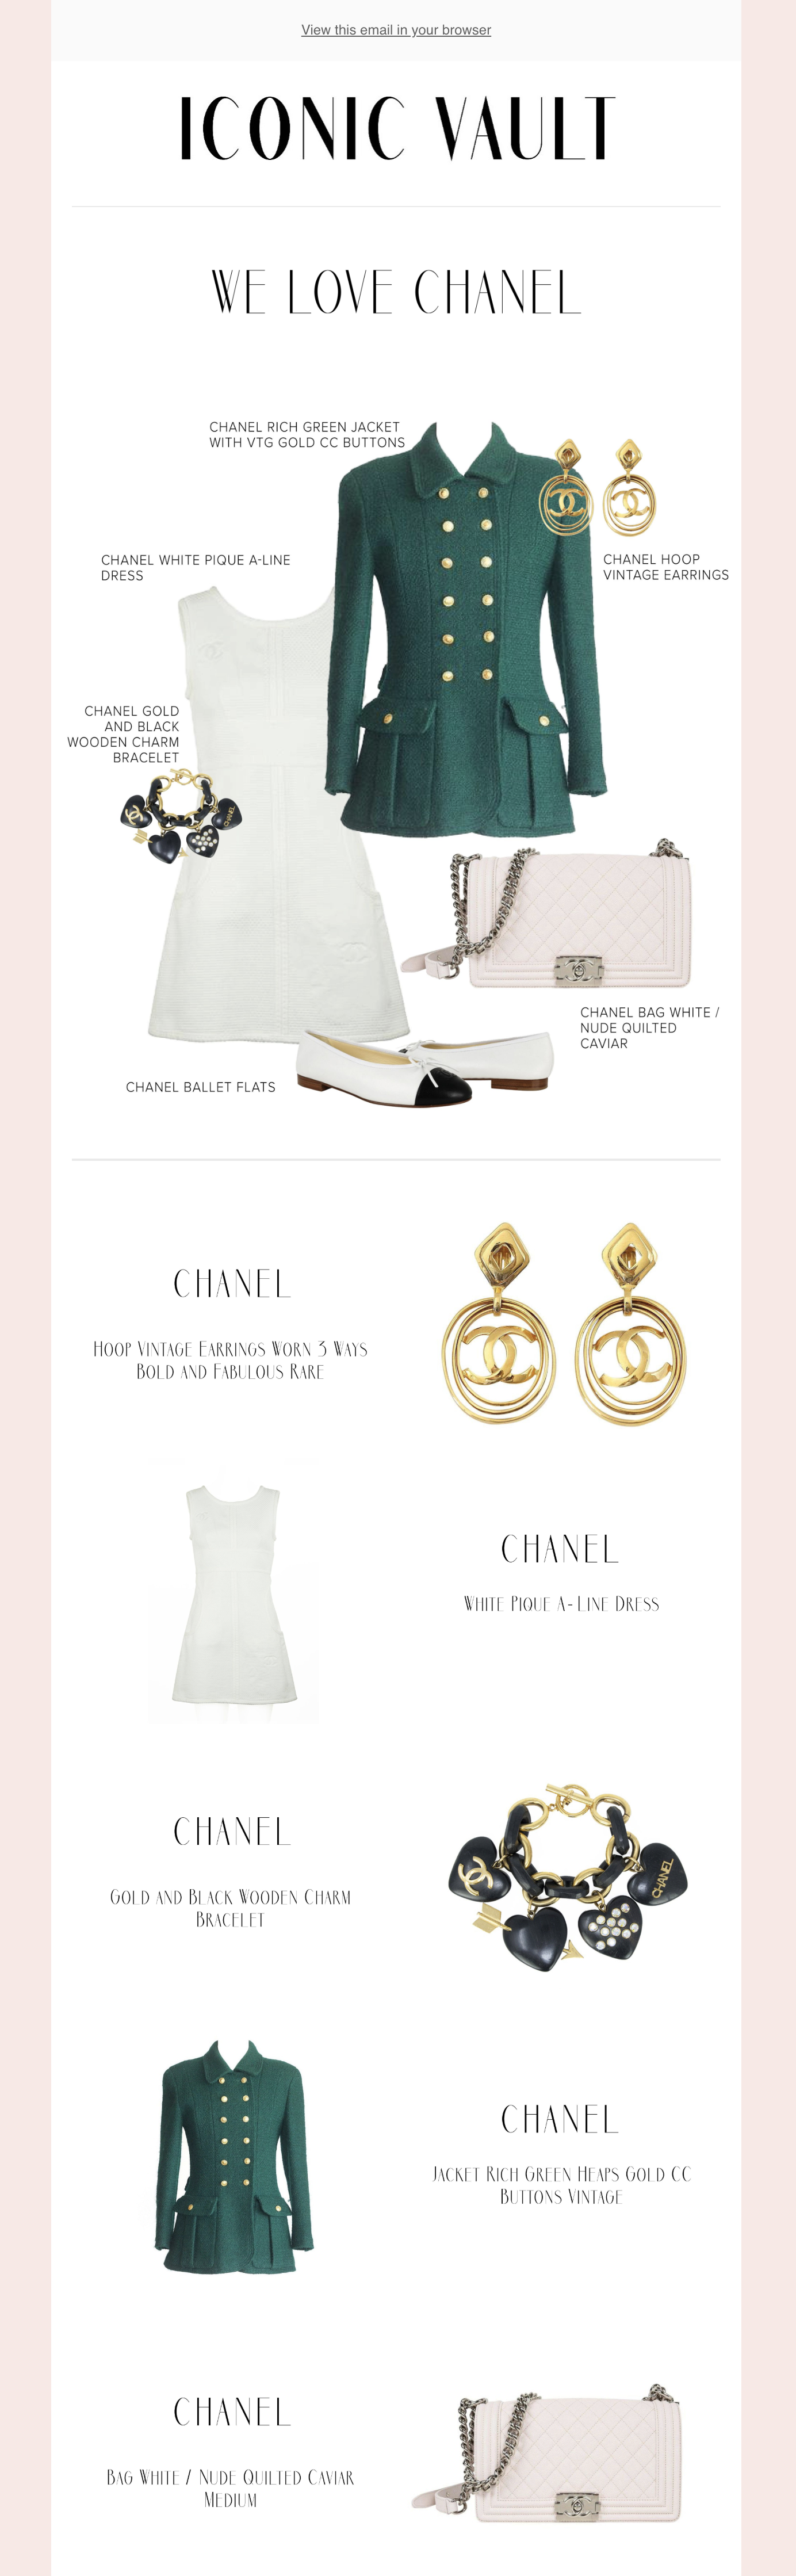 Chanel Campaign _ Option B.png